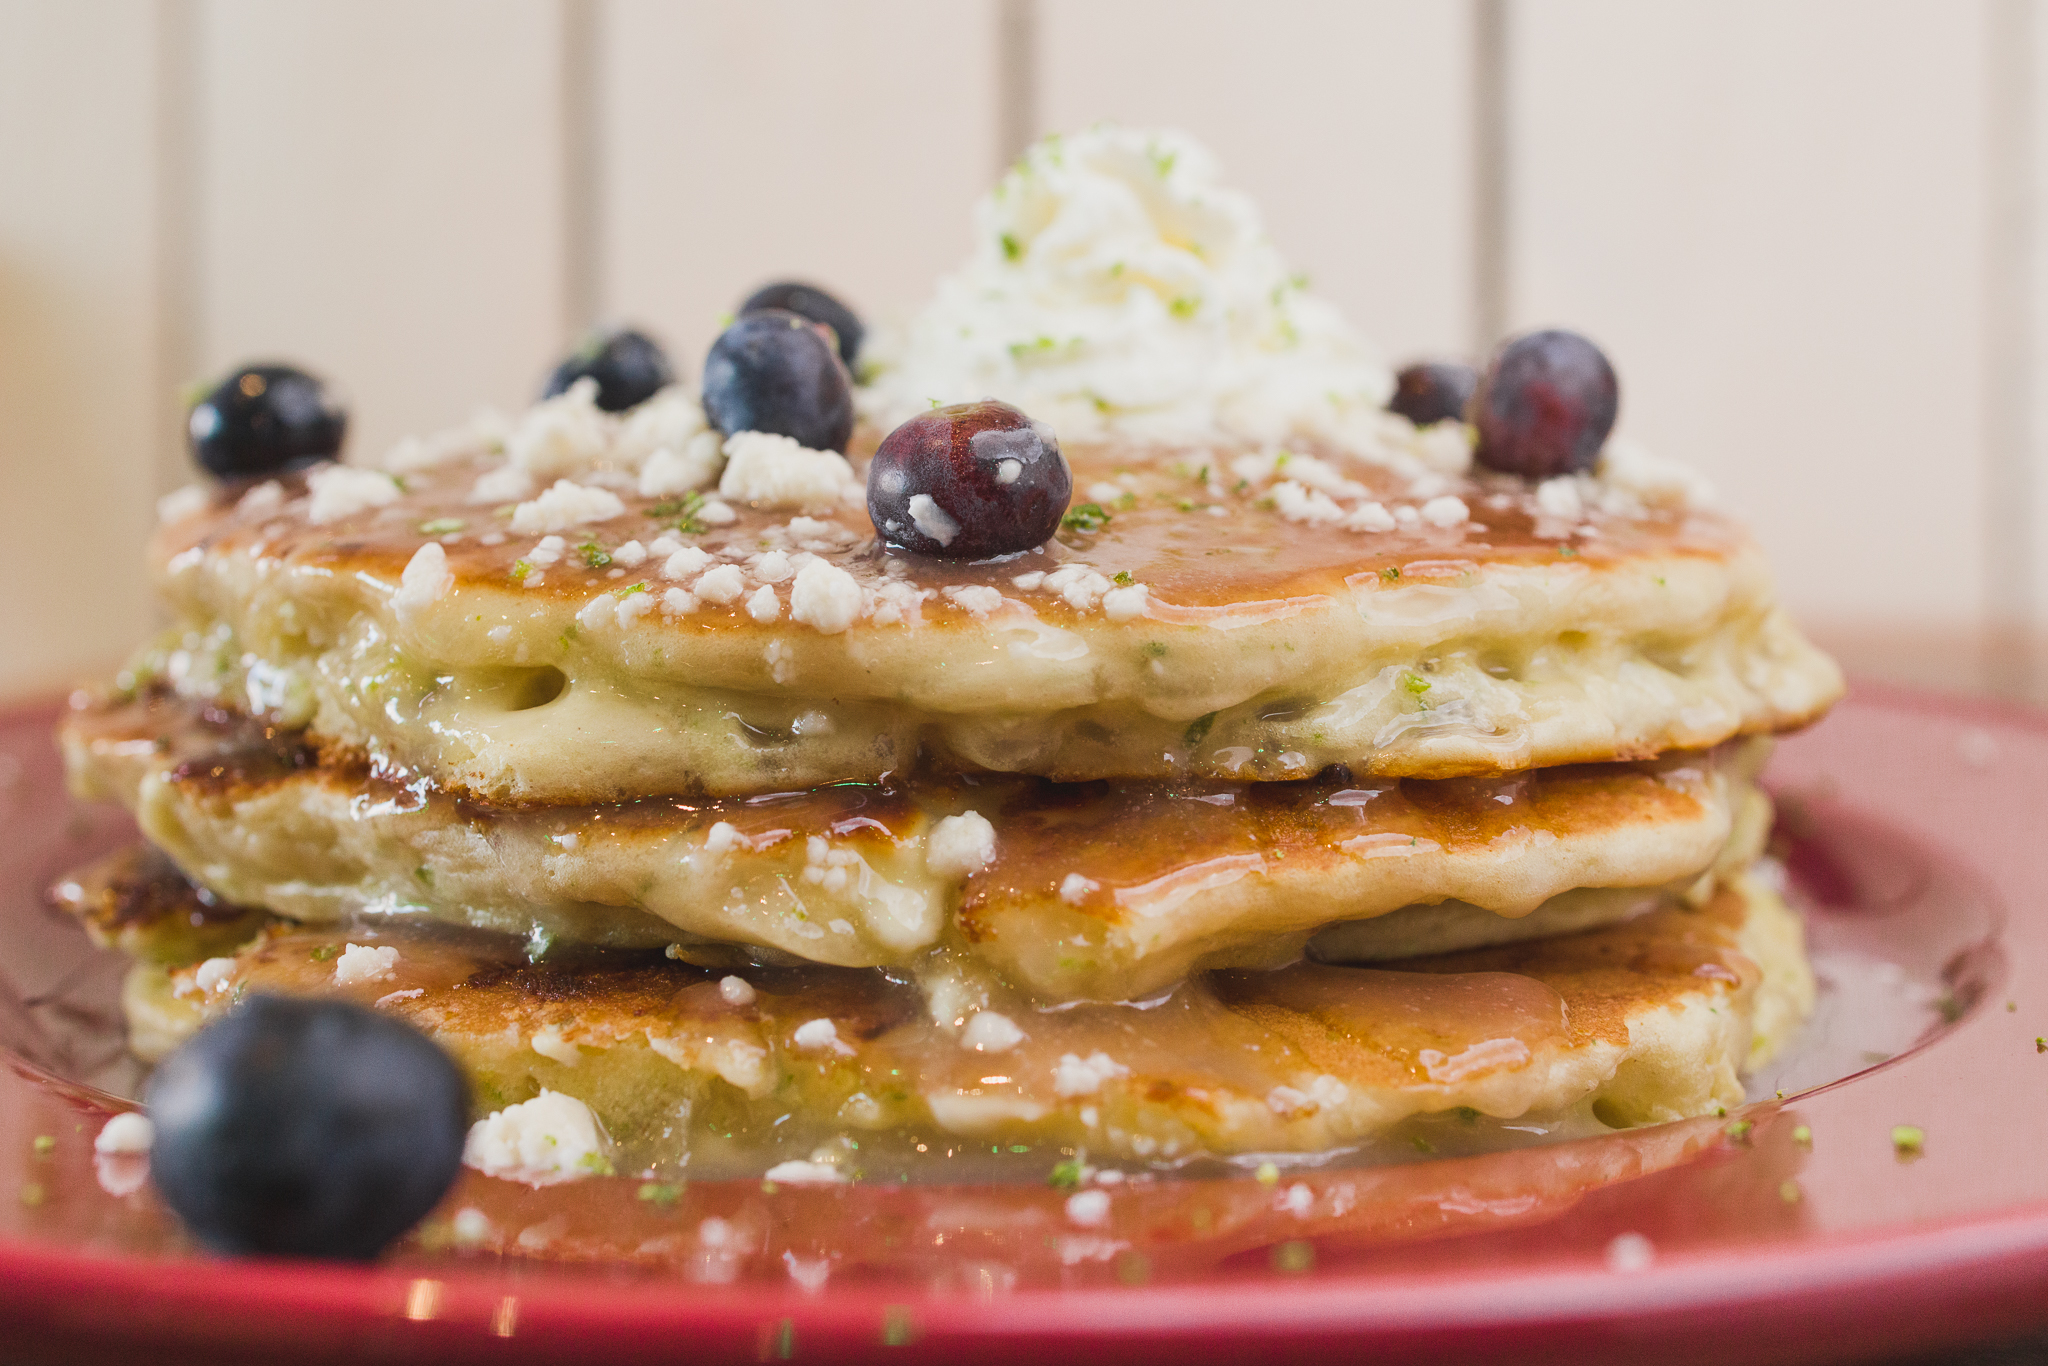 A stack of pancakes with syrup, blueberries